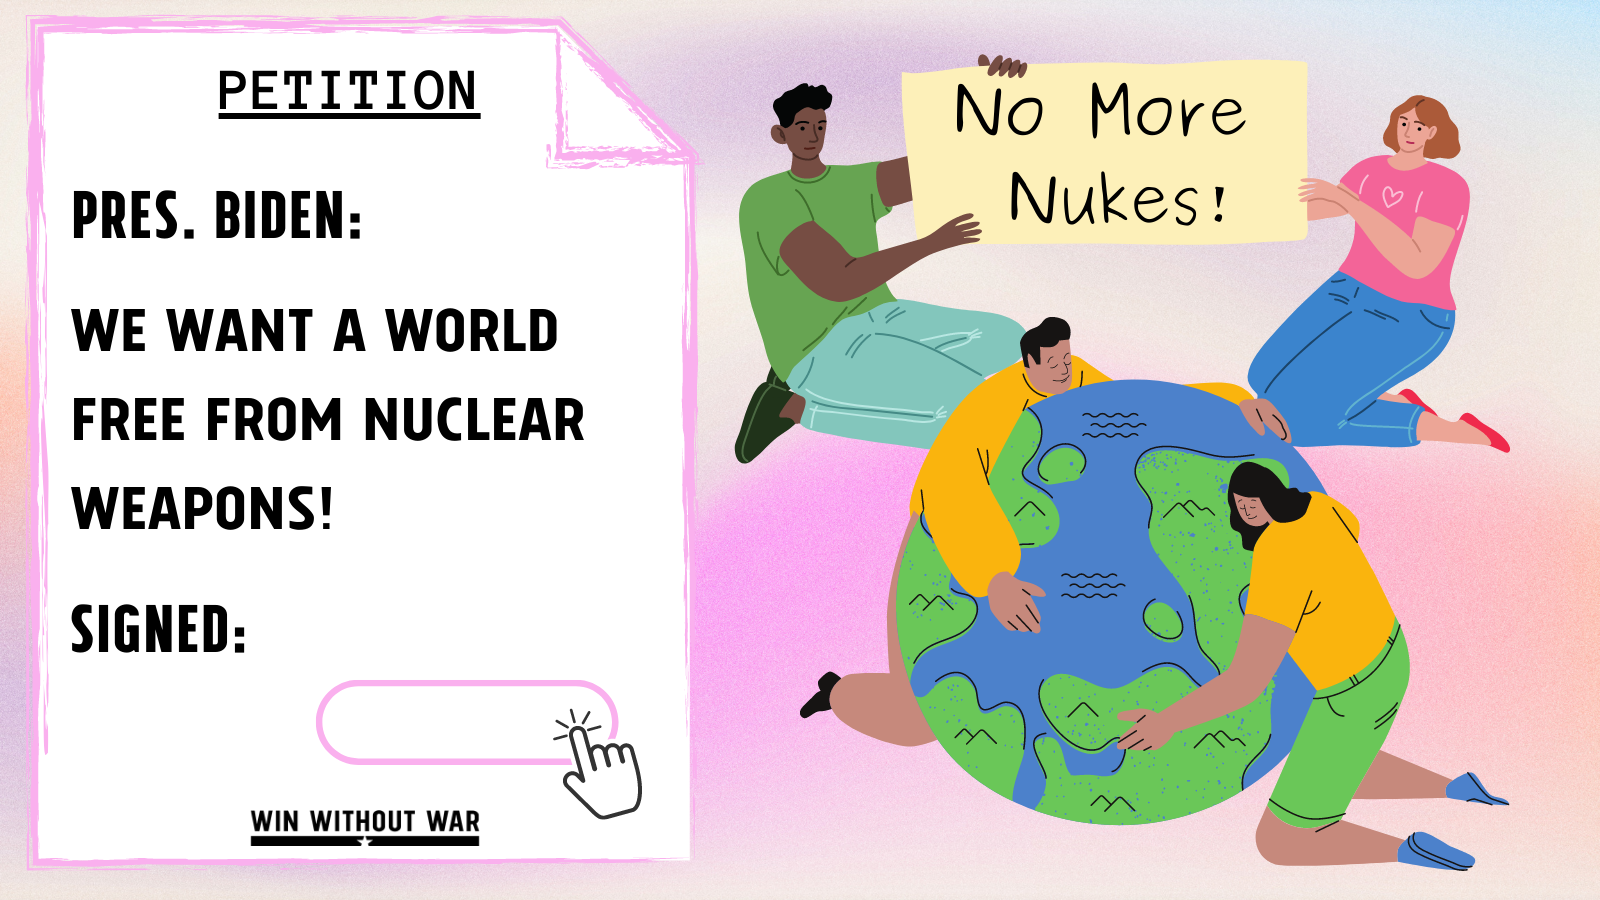 President Biden: We want a world free from nukes!